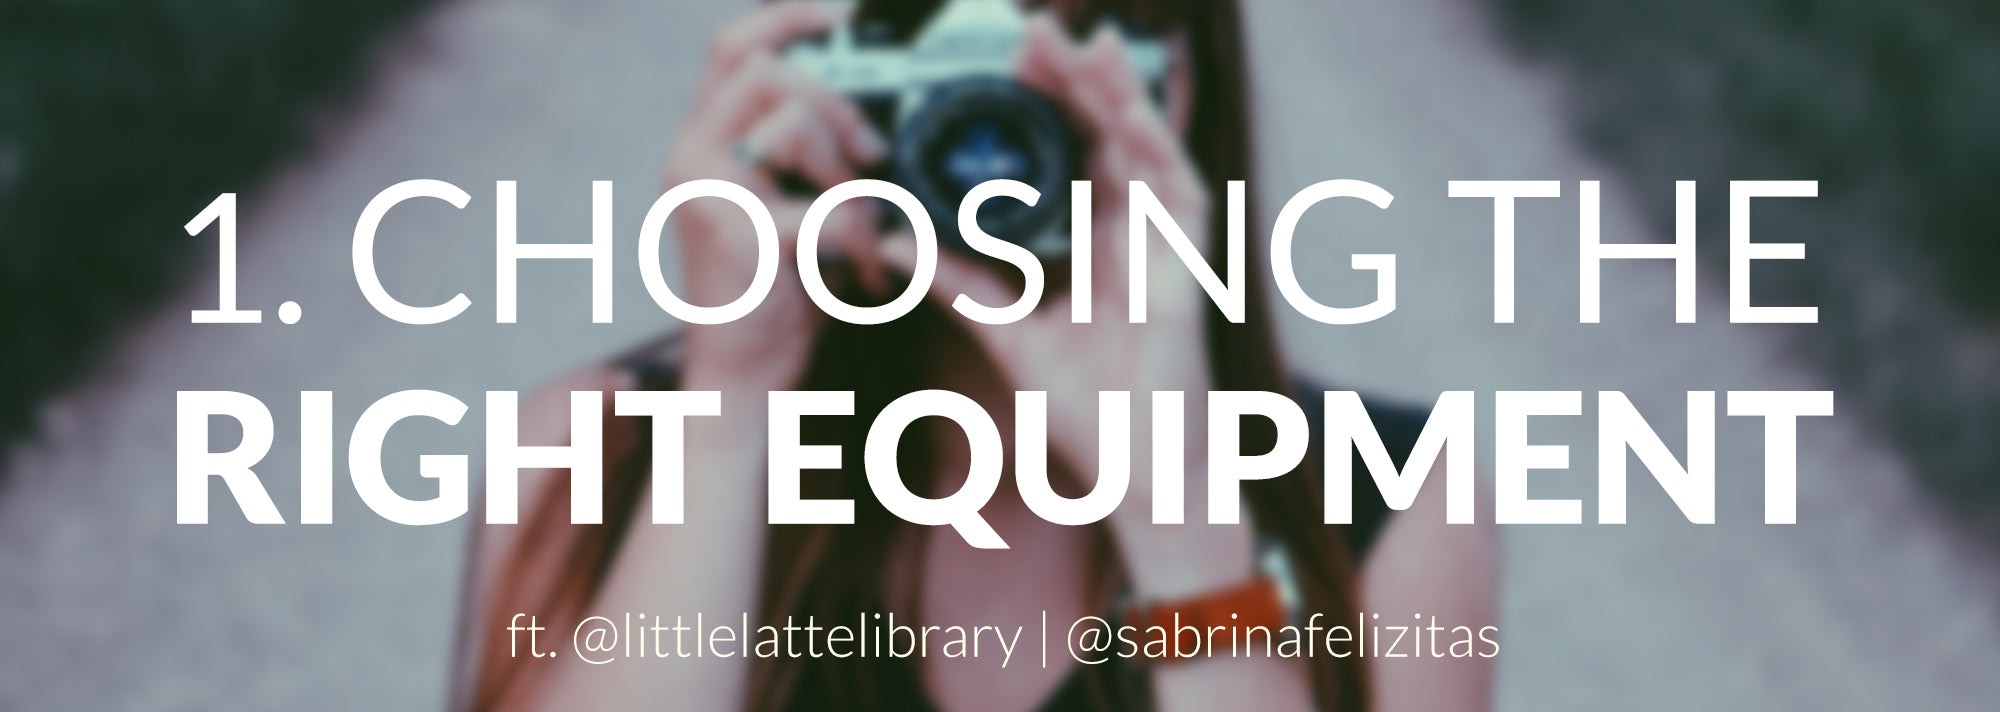 bookstagram title - choosing the right equipment